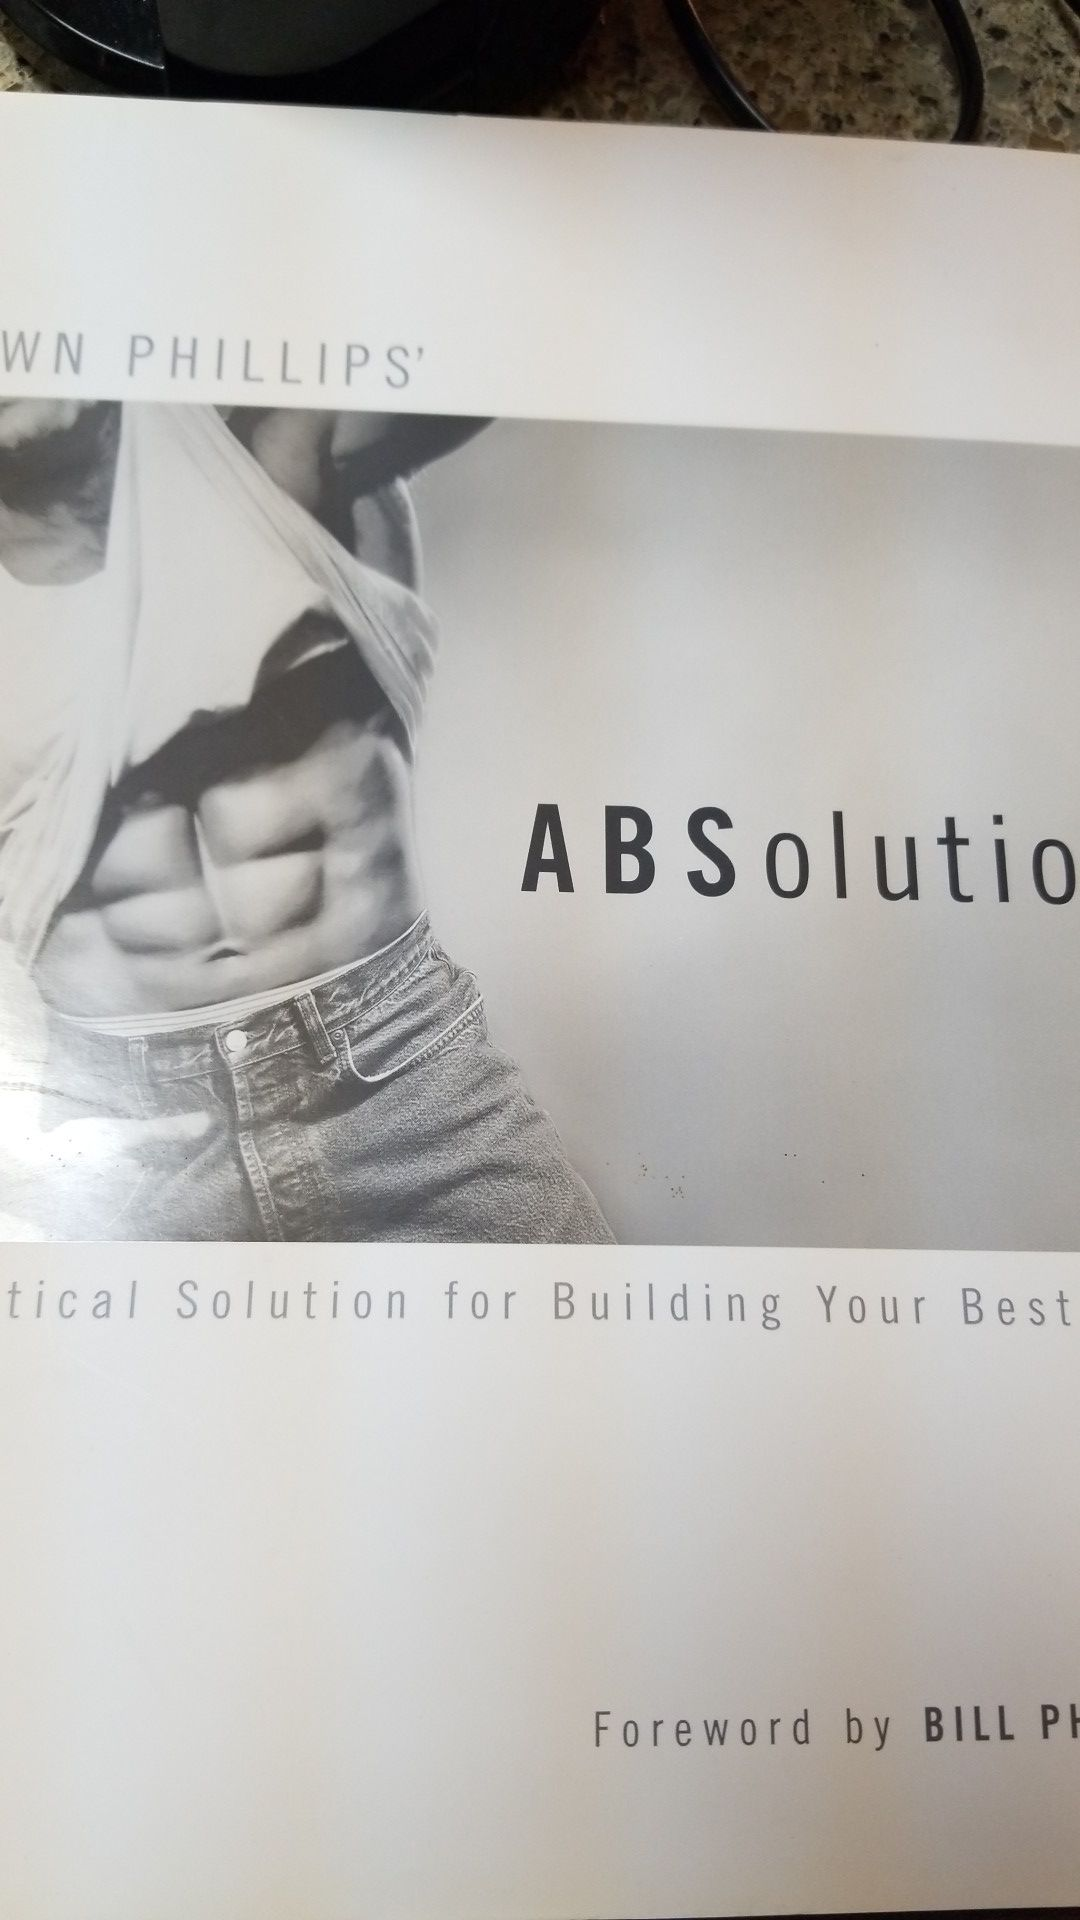 AB workout book by Shawn Phillips